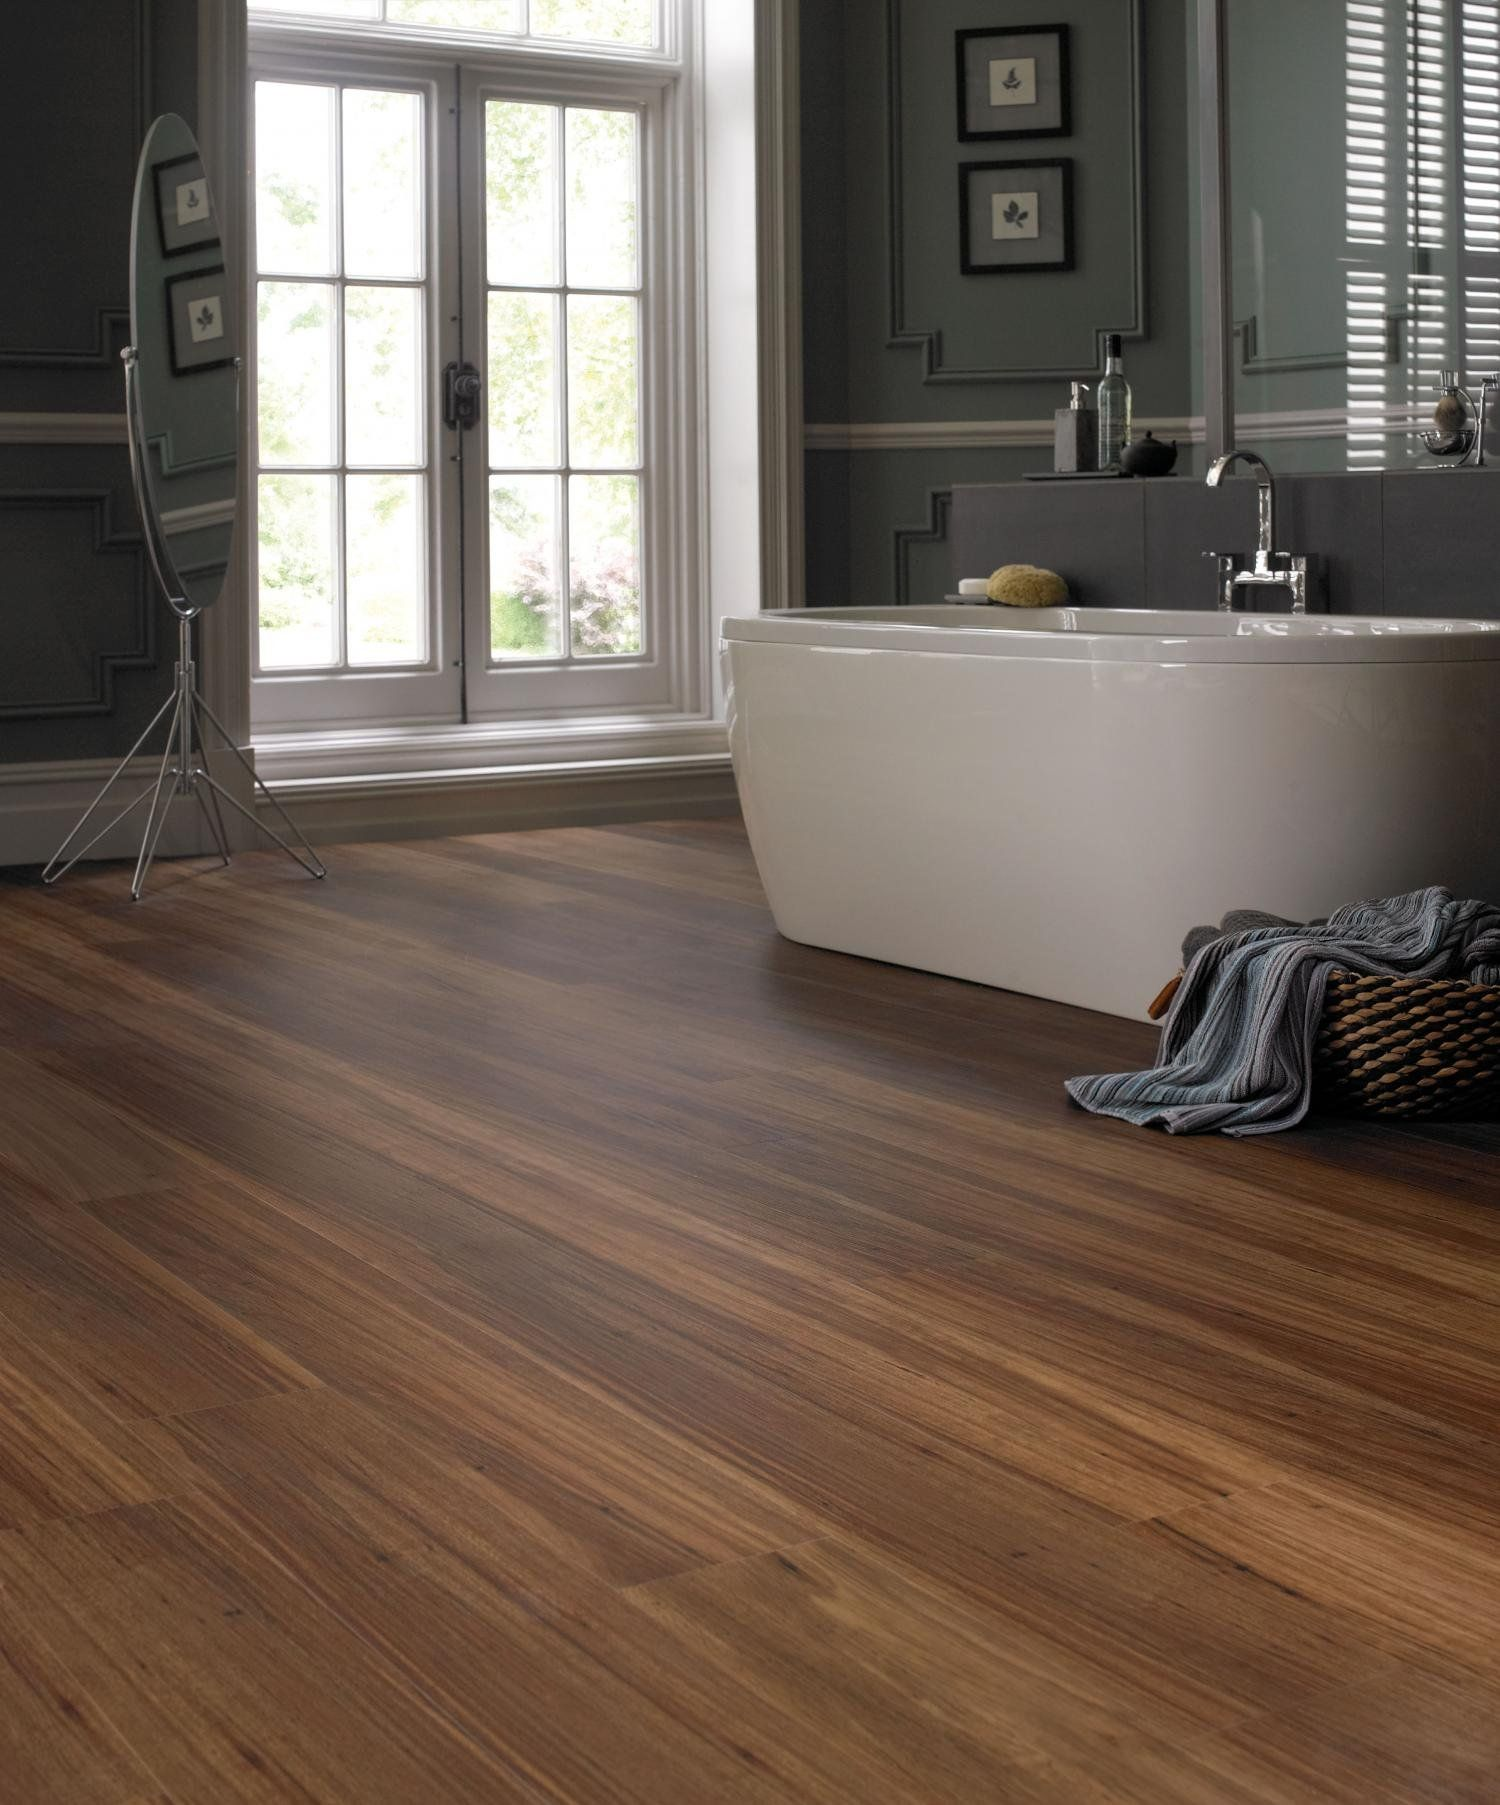 Spectacular wood look tile flooring bathroom design with for Ideas for bathroom flooring